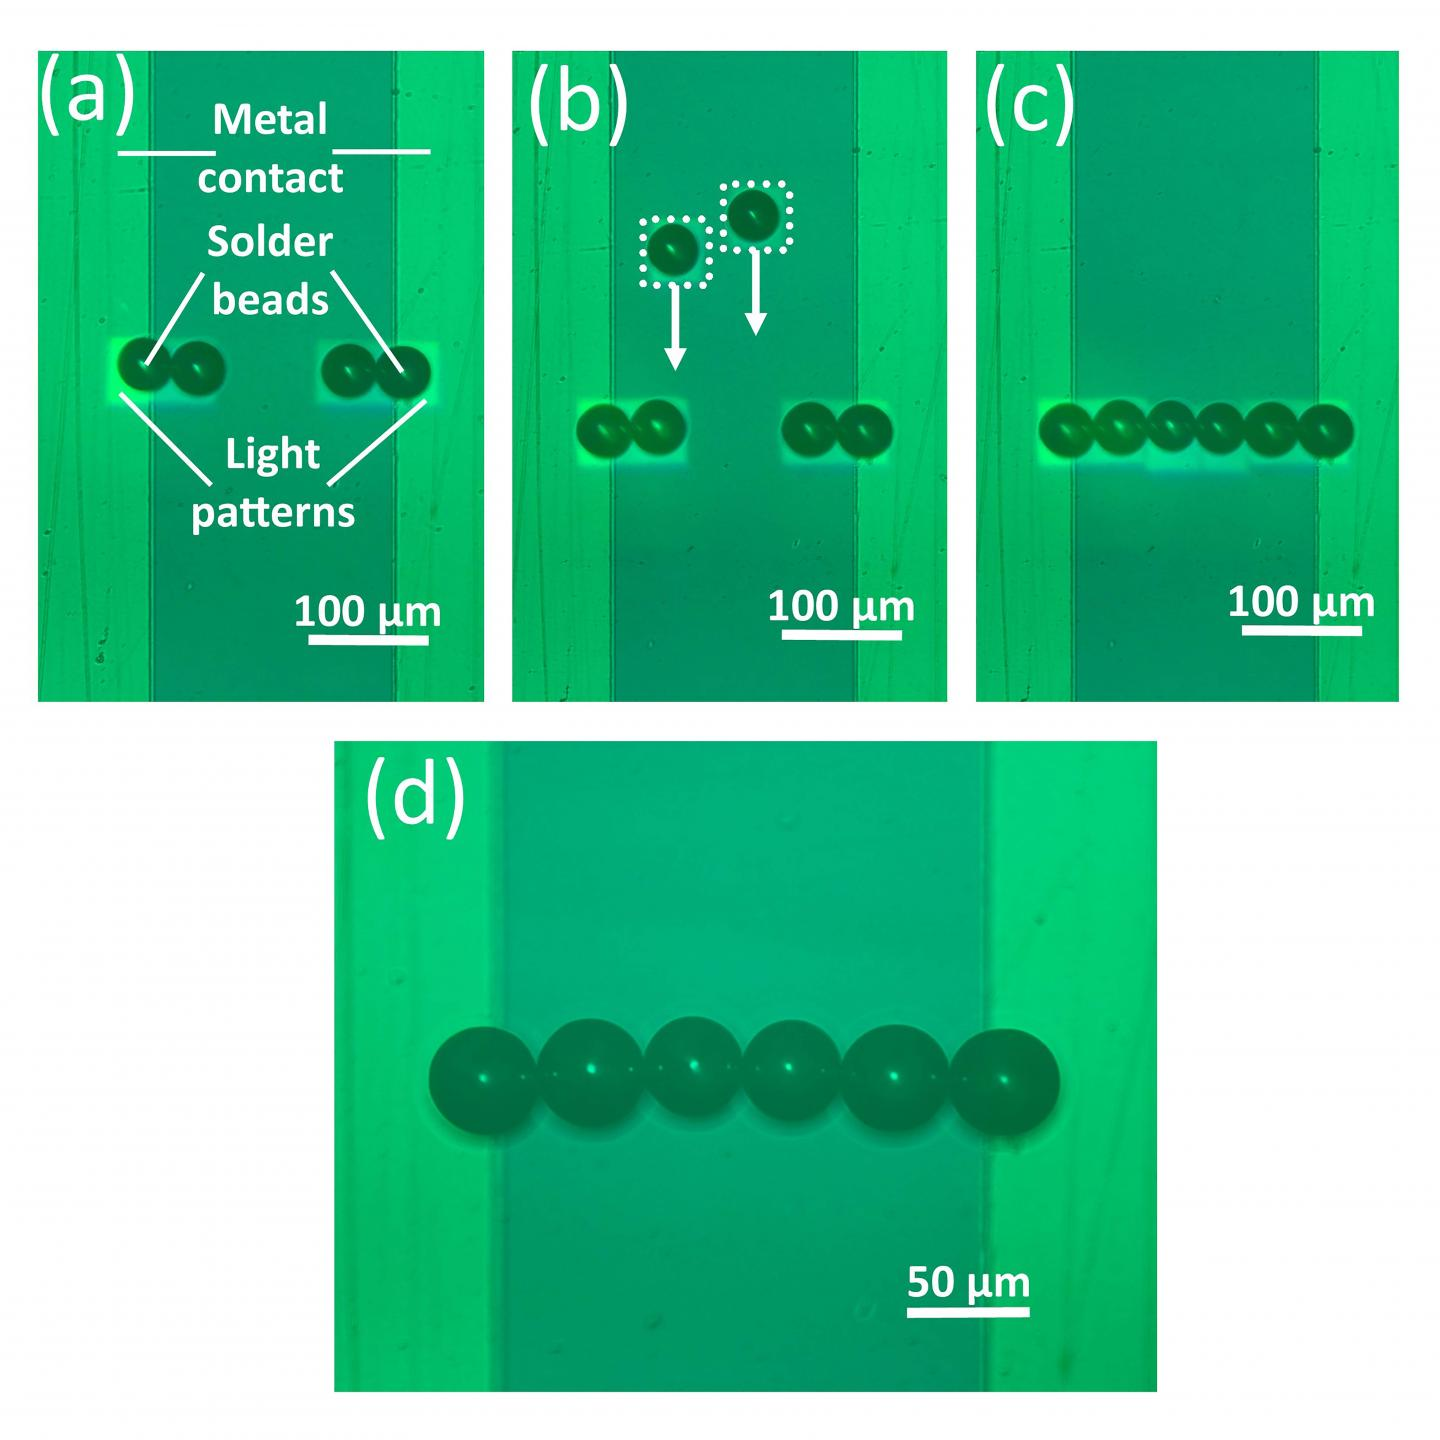 Researchers used optoelectronic tweezers to assemble a line of solder beads